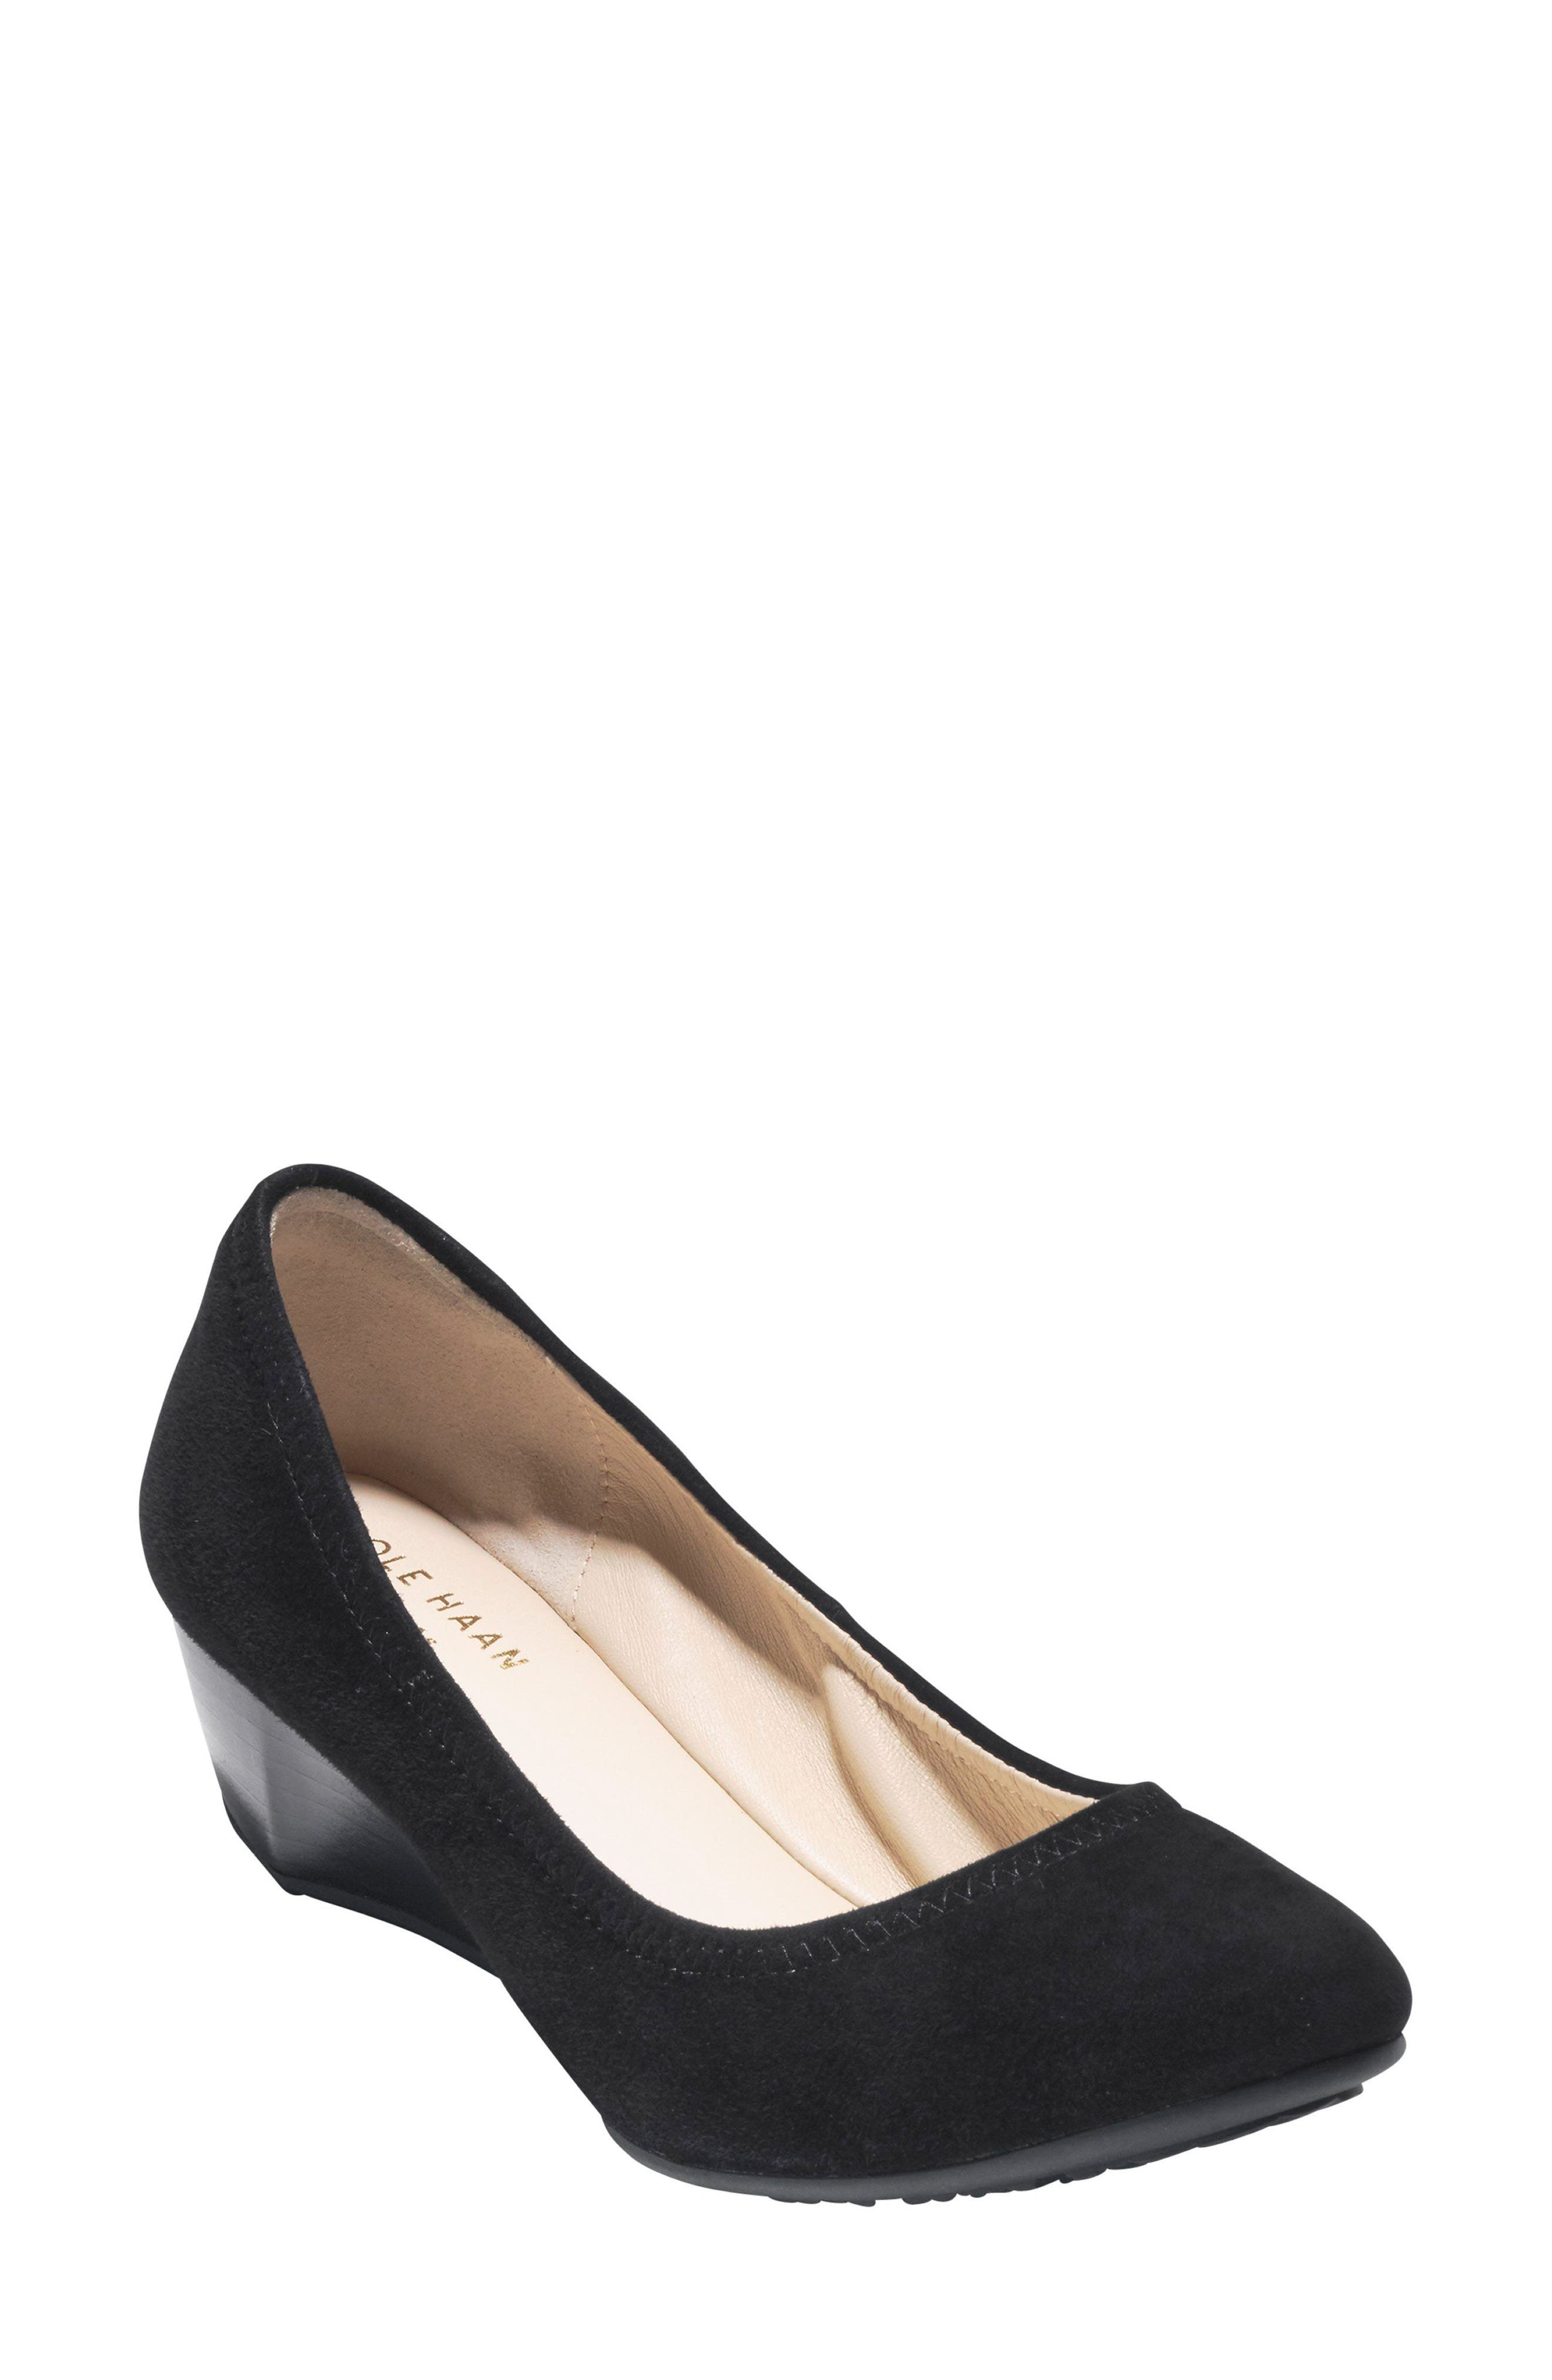 Sadie Wedge Pump,                         Main,                         color, BLACK SUEDE